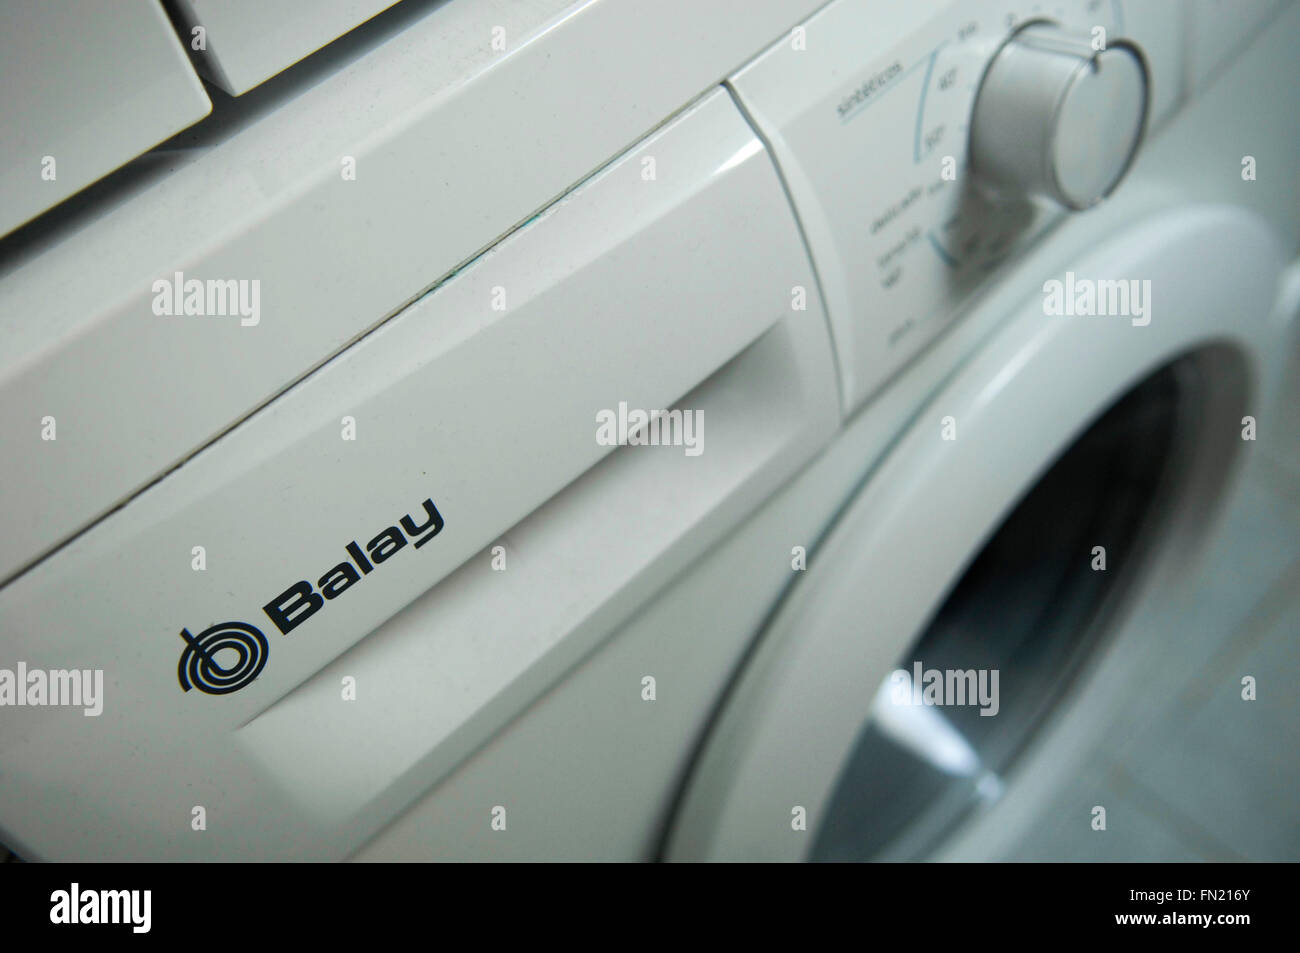 Washing machine logo stock photos washing machine logo stock balay washing machine stock image buycottarizona Choice Image